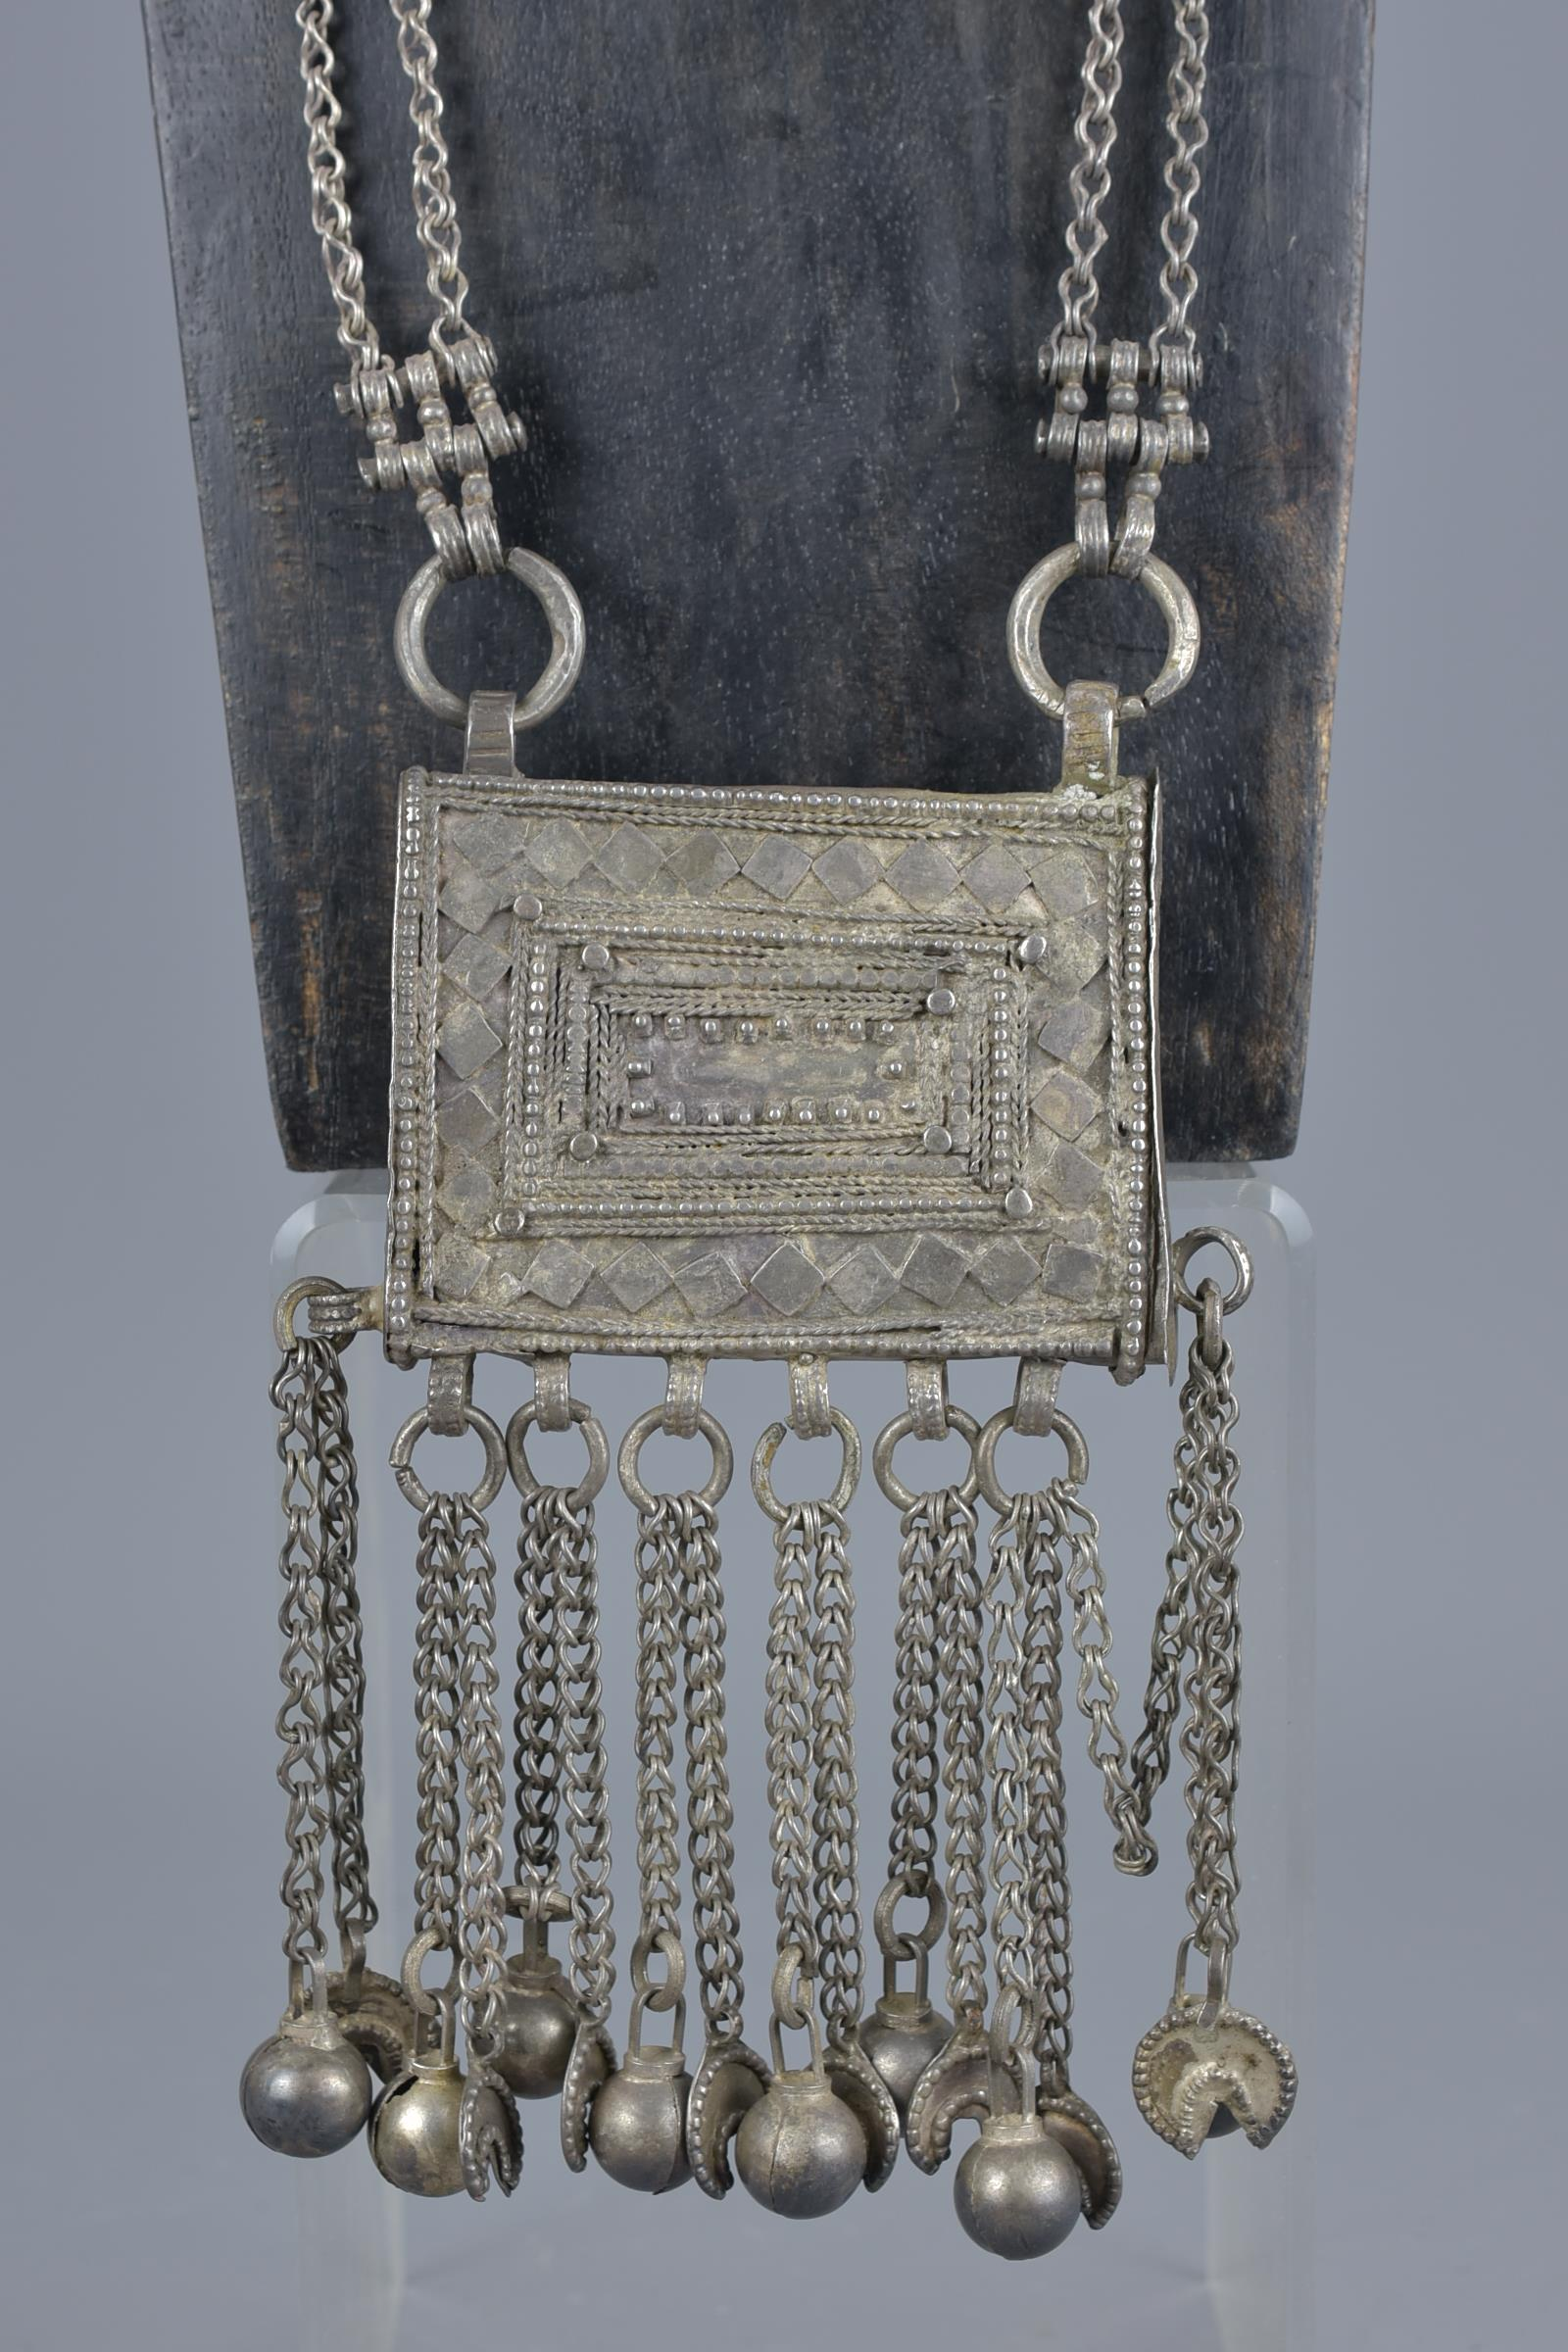 Lot 46 - An Islamic 19th century metal Ottoman prayer box on chain necklace